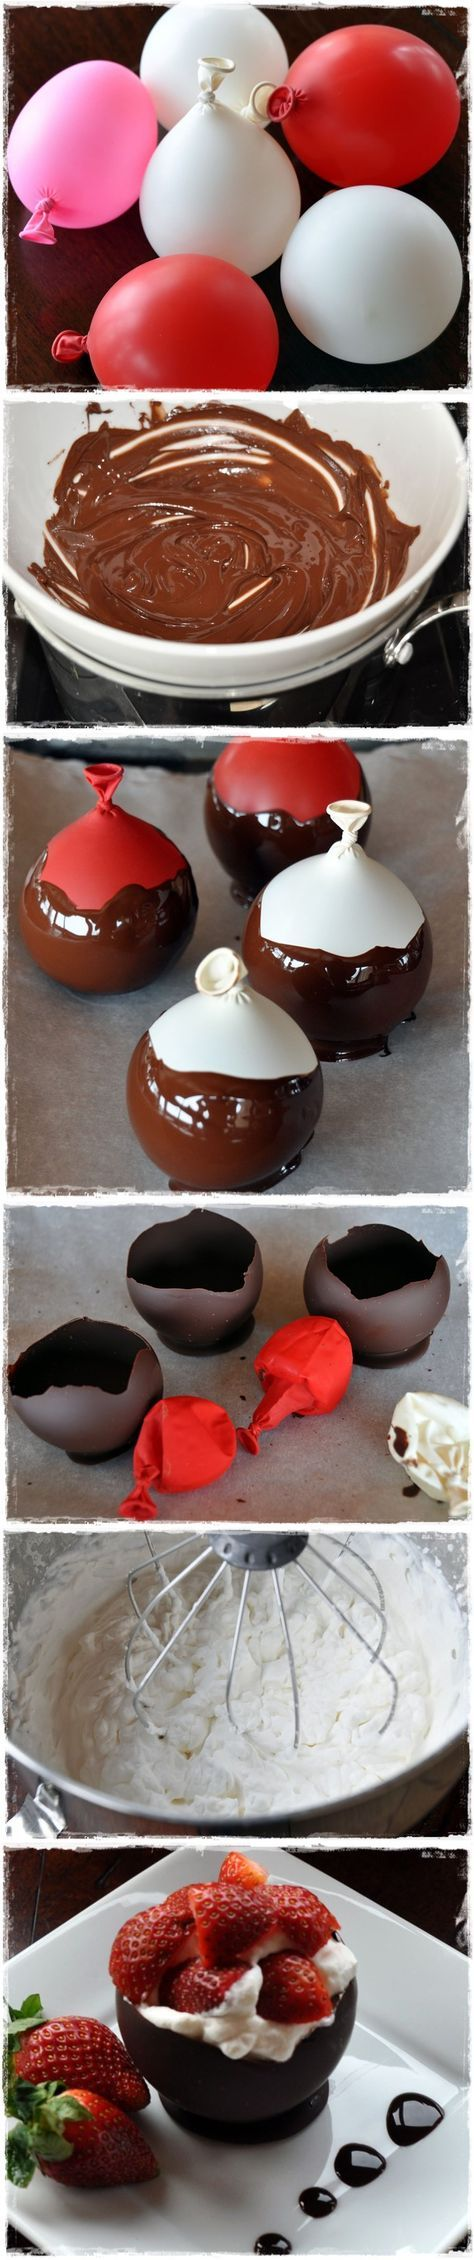 Chocolate Bowls with Chambord Whipped Cream and Berries   Save and organize favourites on your iPhone or iPad with @RecipeTin – without typing them in! Find out more here: www.recipetinapp.com #recipes #tips